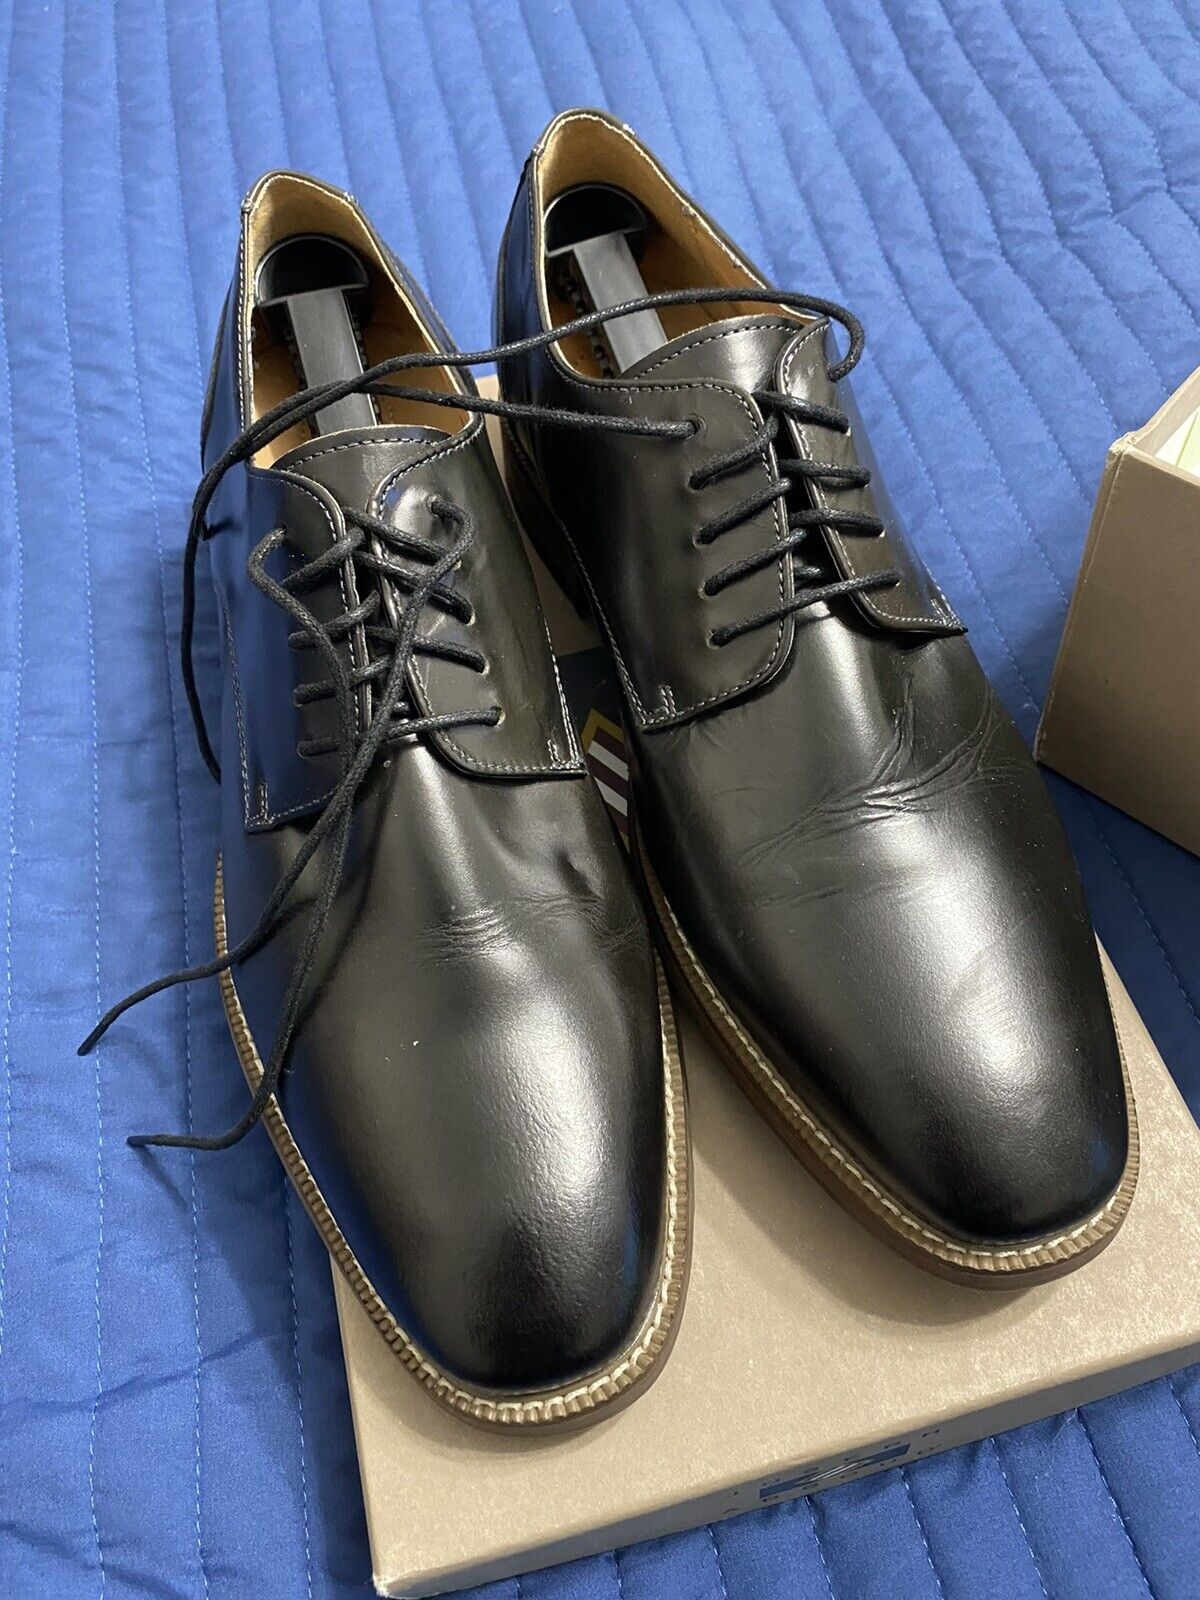 Joseph Abboud Mens Leather Dress / Casual Shoes Brown Size 11.5M New in box